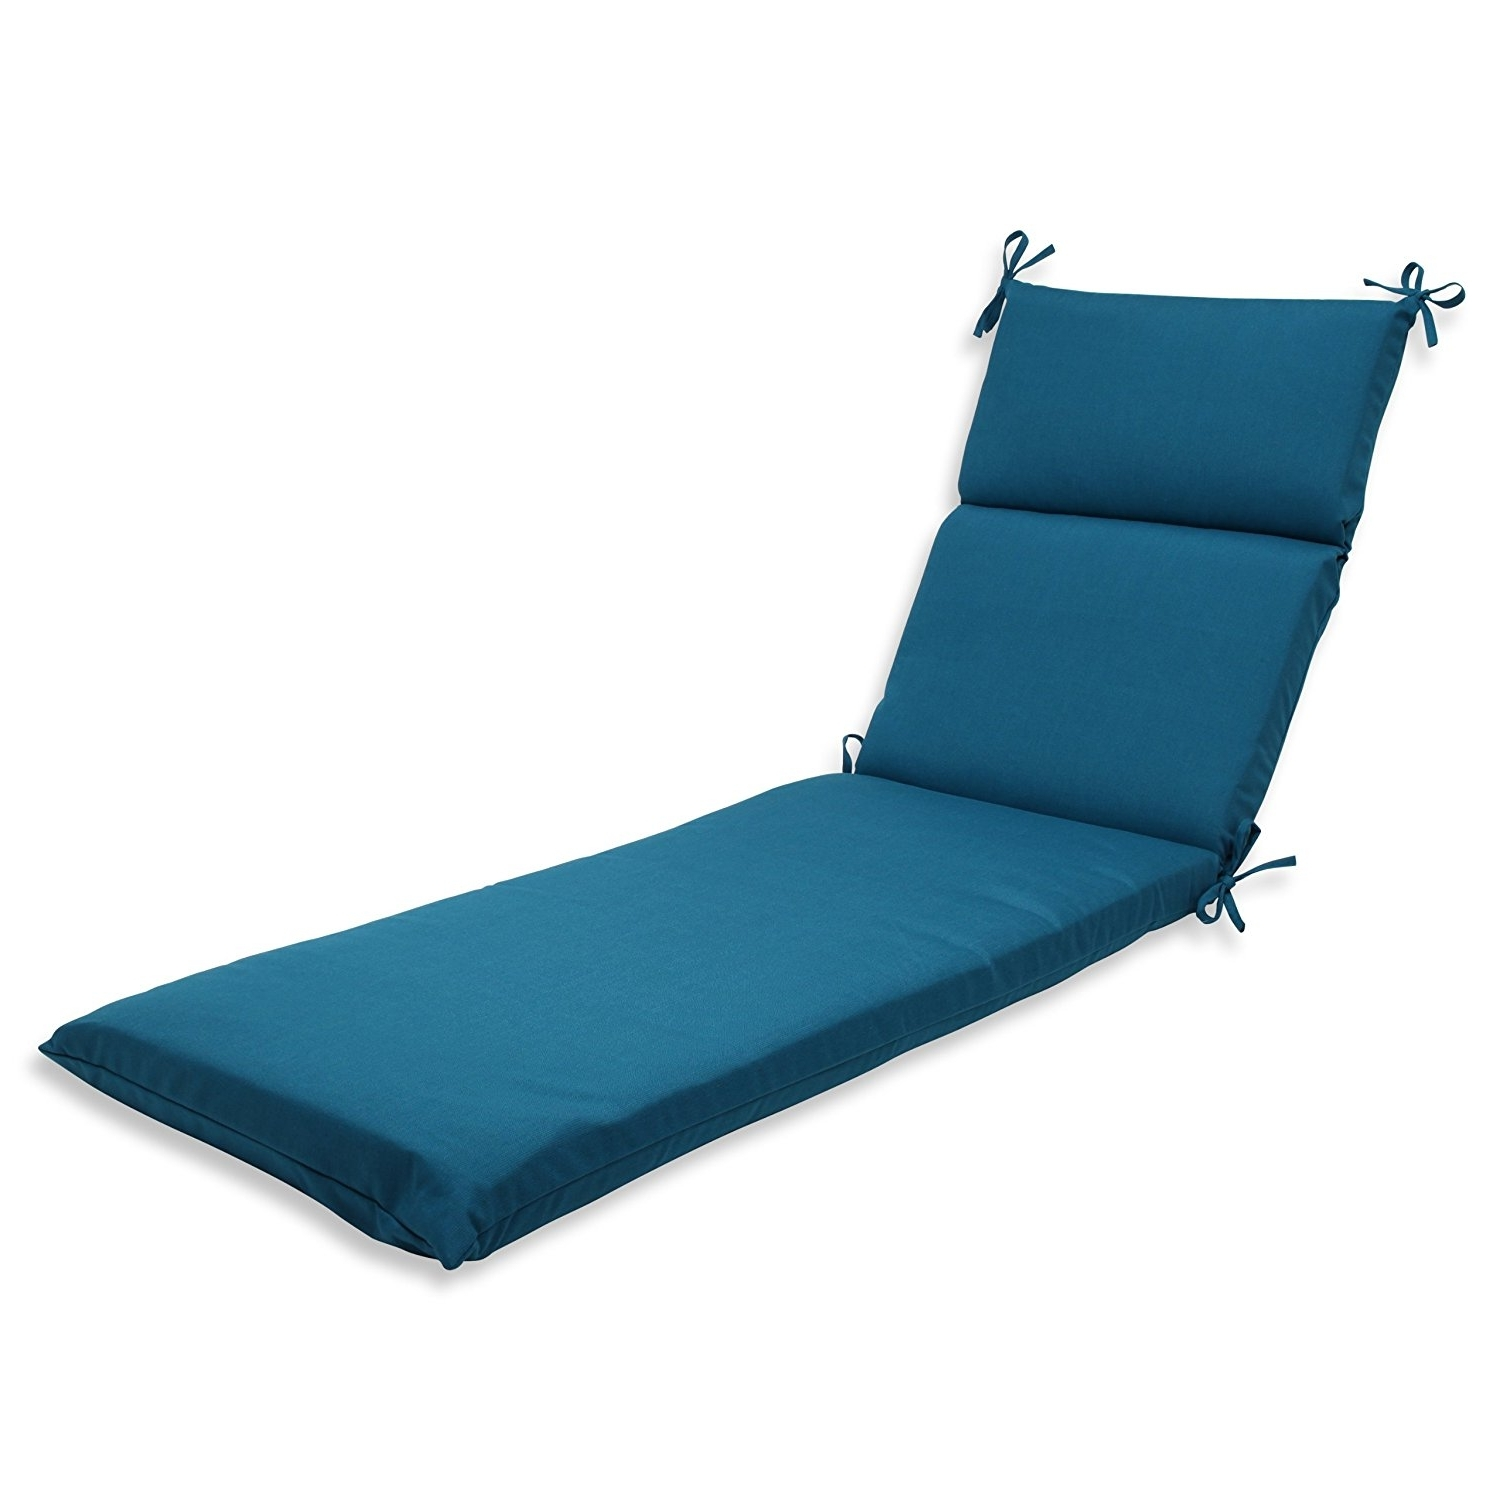 Most Up To Date Amazon: Pillow Perfect Chaise Lounge Cushion With Sunbrella With Regard To Chaise Cushions (View 14 of 15)